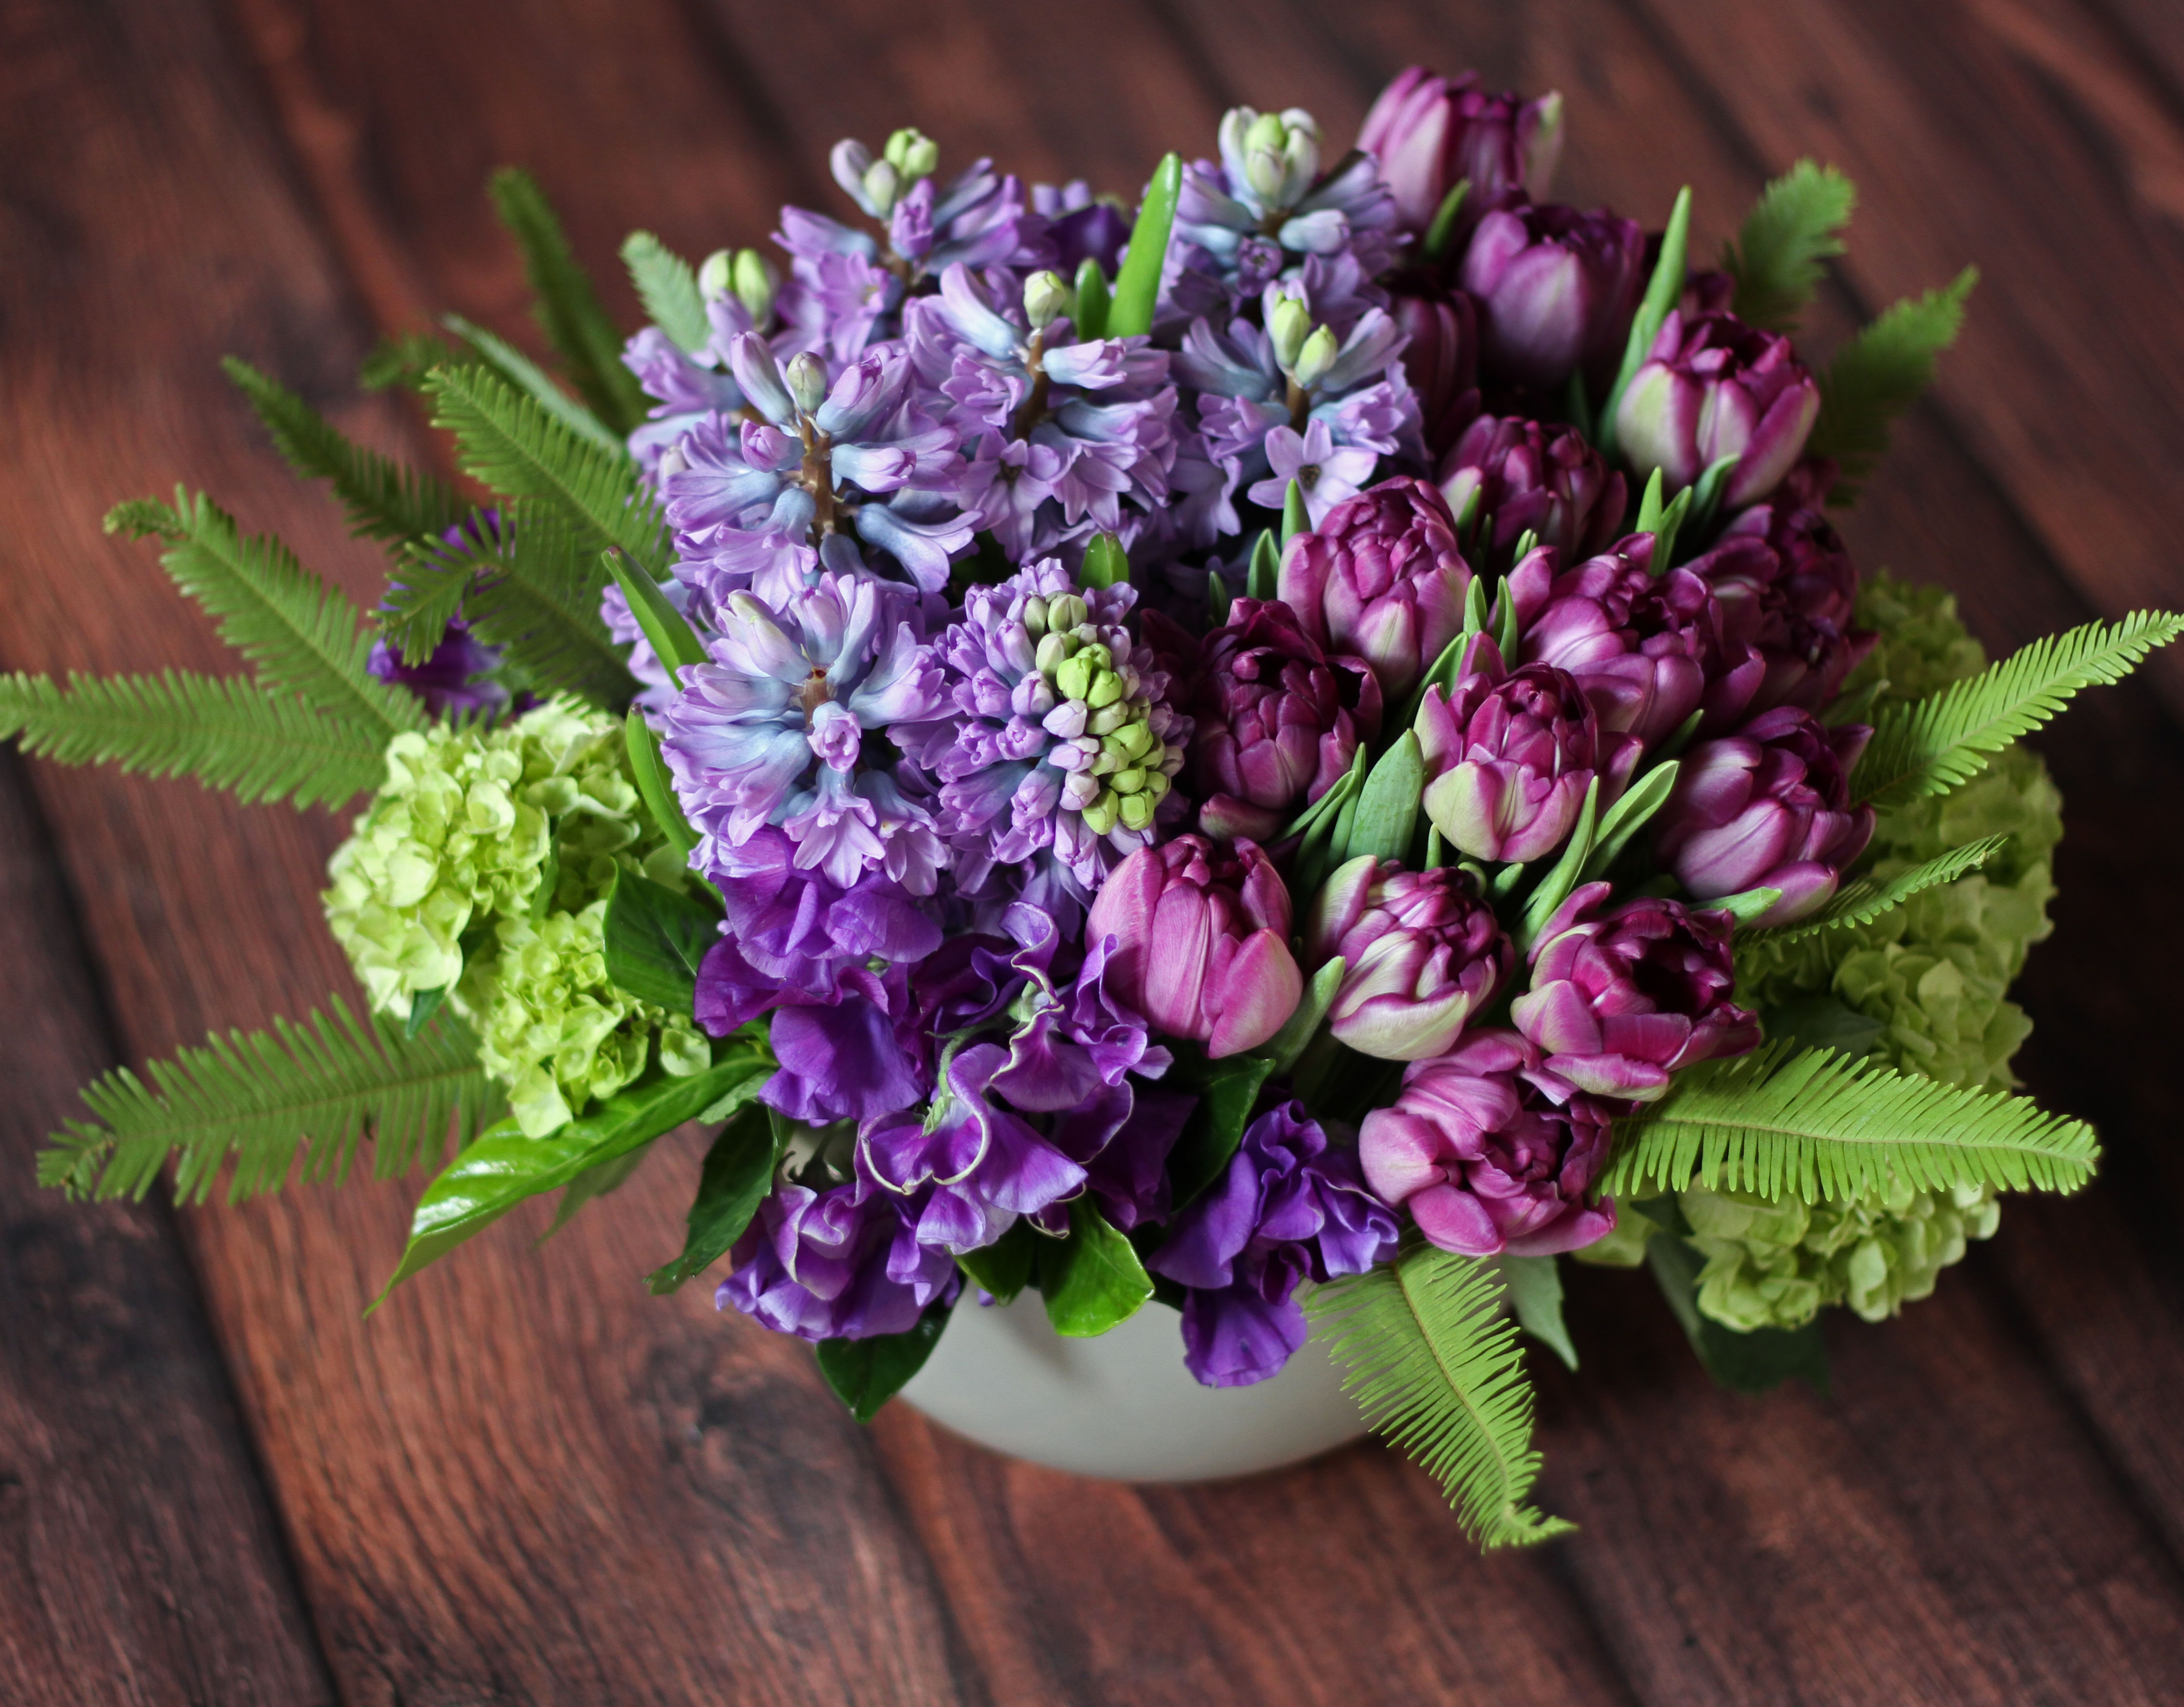 Shades of deepening violet unfold in an ombré fashion: 'Violet Abundance' by Winston Flowers.